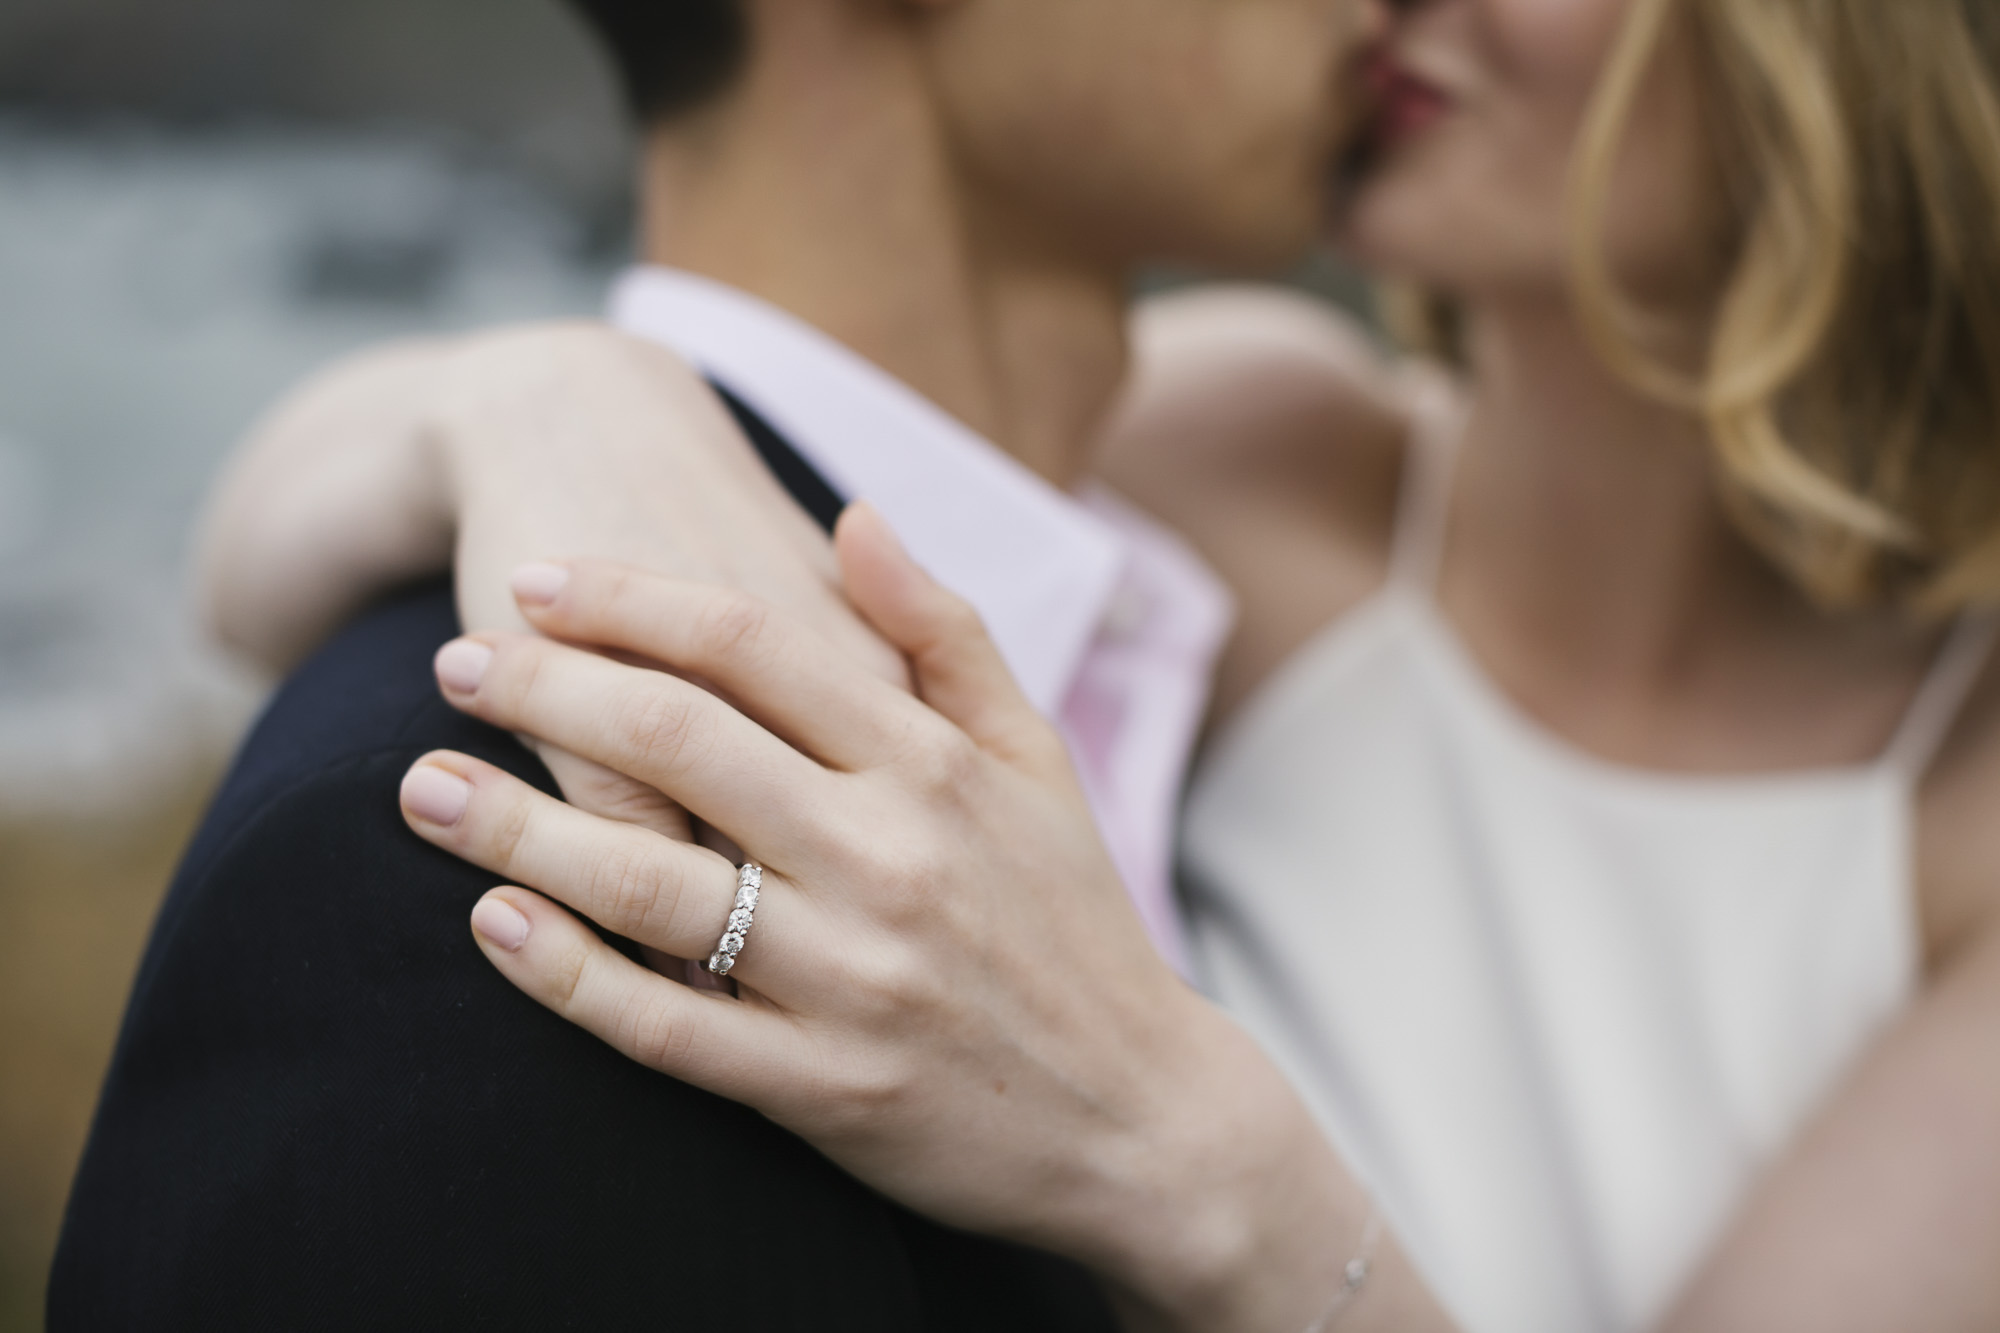 A wedding couple kiss in the background of a detail shot of her wedding ring